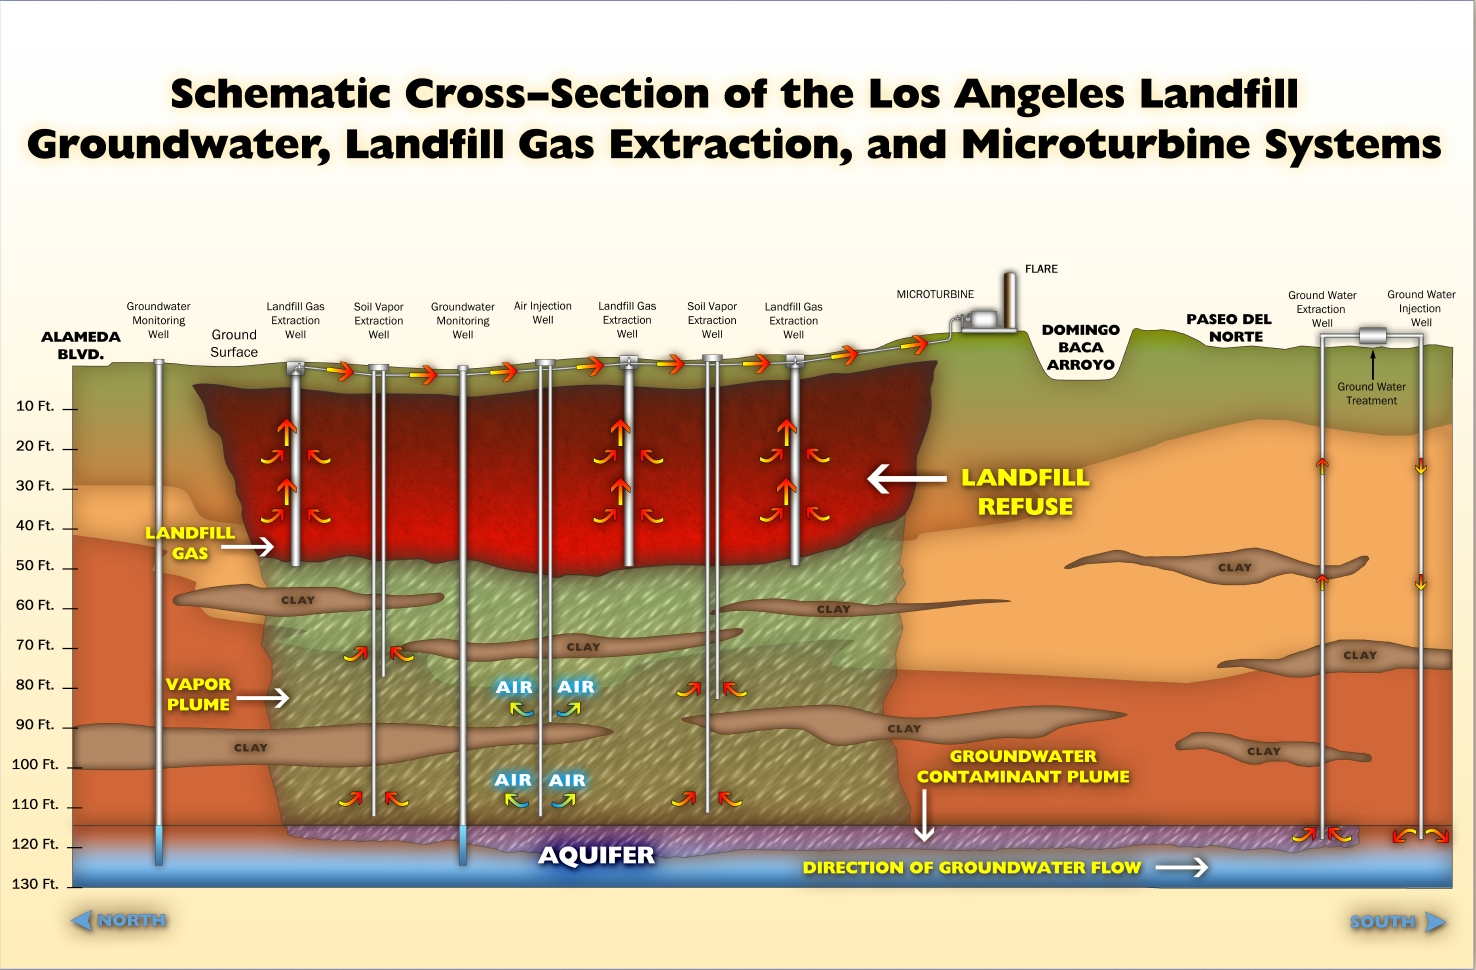 caption:Schematic Cross-Section of the Los Angeles Landfill